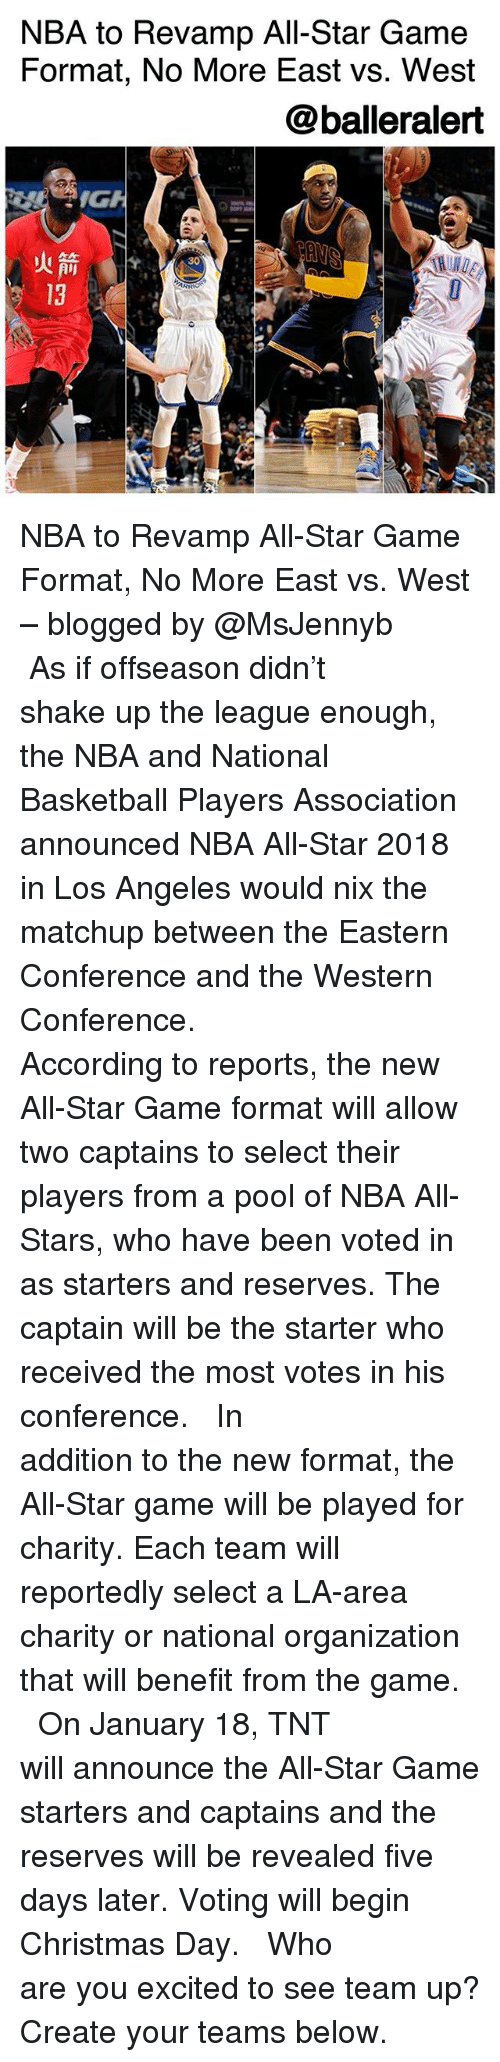 nba all stars: NBA to Revamp All-Star Game  Format, No More East vs. West  @balleralert  IG  火箭(  13 NBA to Revamp All-Star Game Format, No More East vs. West – blogged by @MsJennyb ⠀⠀⠀⠀⠀⠀⠀ ⠀⠀⠀⠀⠀⠀⠀ As if offseason didn't shake up the league enough, the NBA and National Basketball Players Association announced NBA All-Star 2018 in Los Angeles would nix the matchup between the Eastern Conference and the Western Conference. ⠀⠀⠀⠀⠀⠀⠀ ⠀⠀⠀⠀⠀⠀⠀ According to reports, the new All-Star Game format will allow two captains to select their players from a pool of NBA All-Stars, who have been voted in as starters and reserves. The captain will be the starter who received the most votes in his conference. ⠀⠀⠀⠀⠀⠀⠀ ⠀⠀⠀⠀⠀⠀⠀ In addition to the new format, the All-Star game will be played for charity. Each team will reportedly select a LA-area charity or national organization that will benefit from the game. ⠀⠀⠀⠀⠀⠀⠀ ⠀⠀⠀⠀⠀⠀⠀ On January 18, TNT will announce the All-Star Game starters and captains and the reserves will be revealed five days later. Voting will begin Christmas Day. ⠀⠀⠀⠀⠀⠀⠀ ⠀⠀⠀⠀⠀⠀⠀ Who are you excited to see team up? Create your teams below.